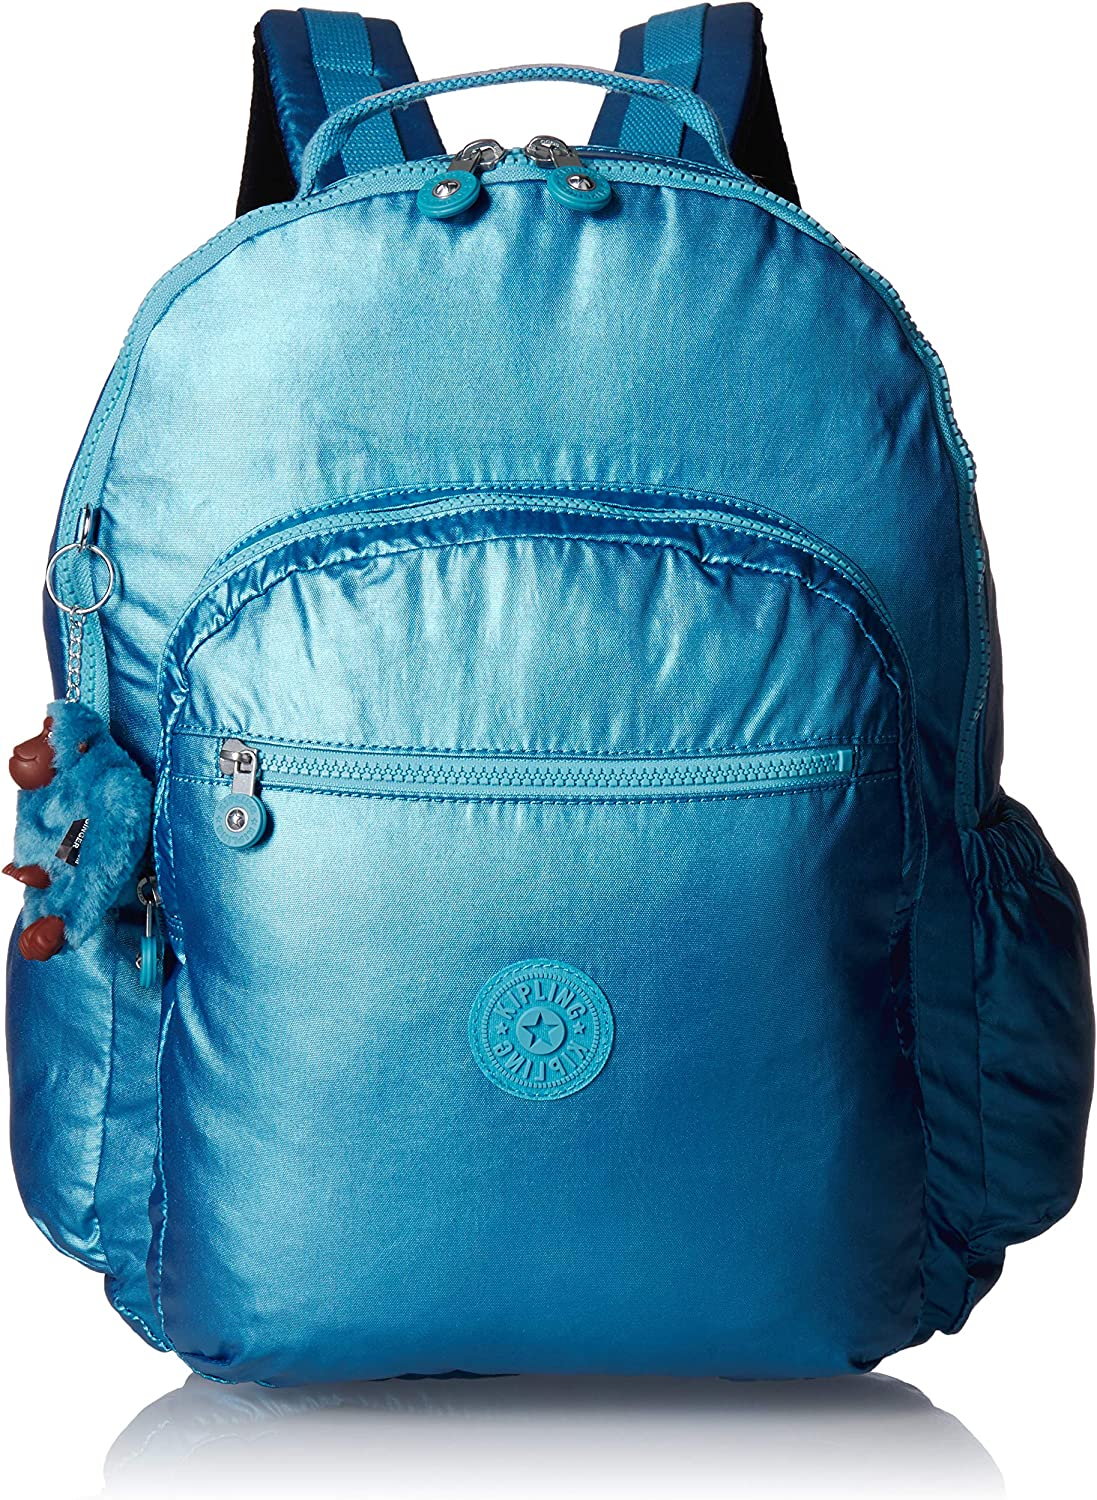 Kipling Seoul Go Extra Large Backpack